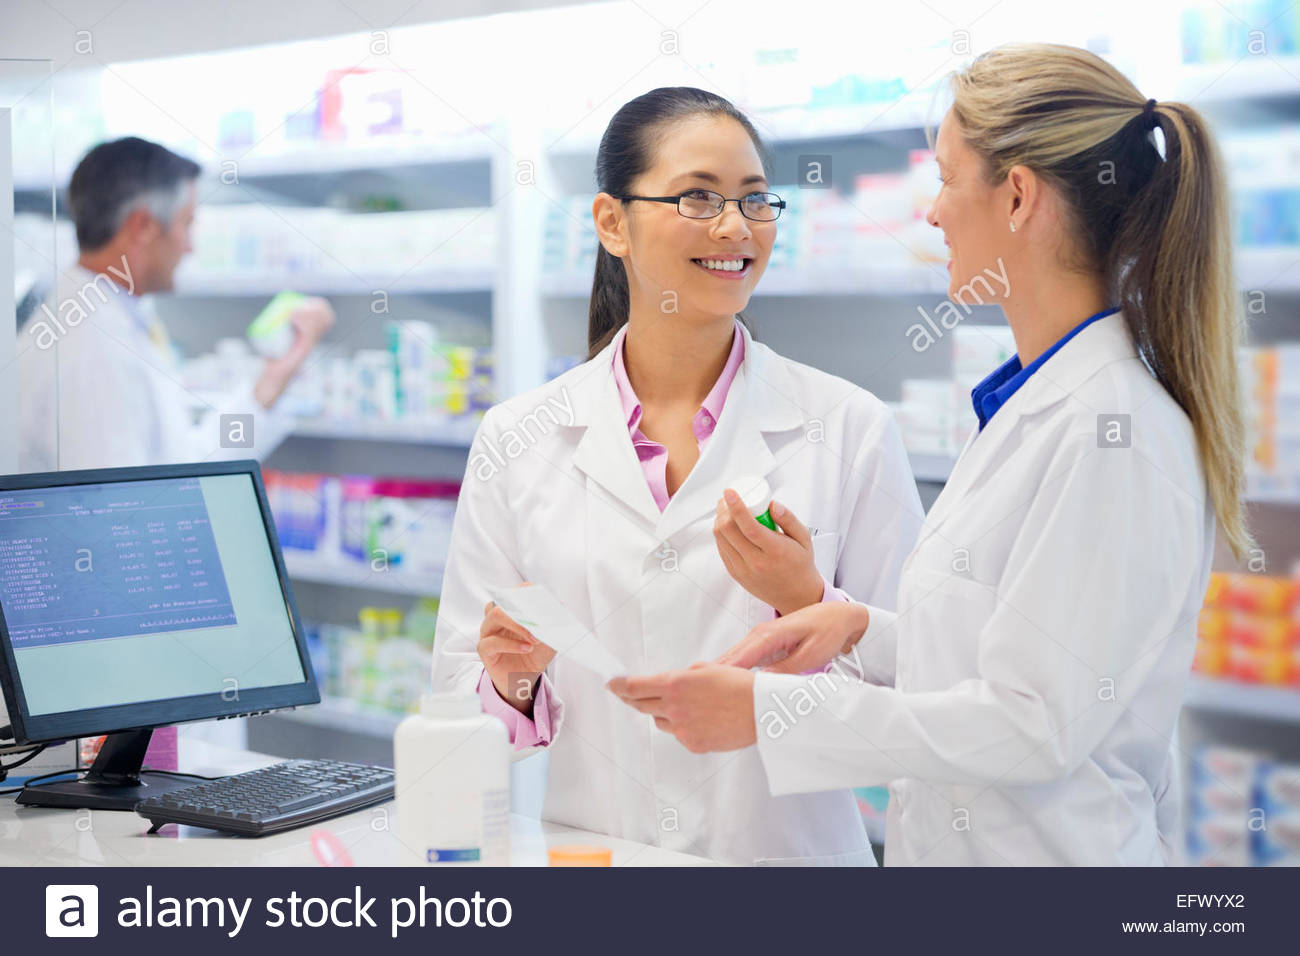 Pharmacist, holding prescription, smiling and talking to colleague in pharmacy - Stock Image